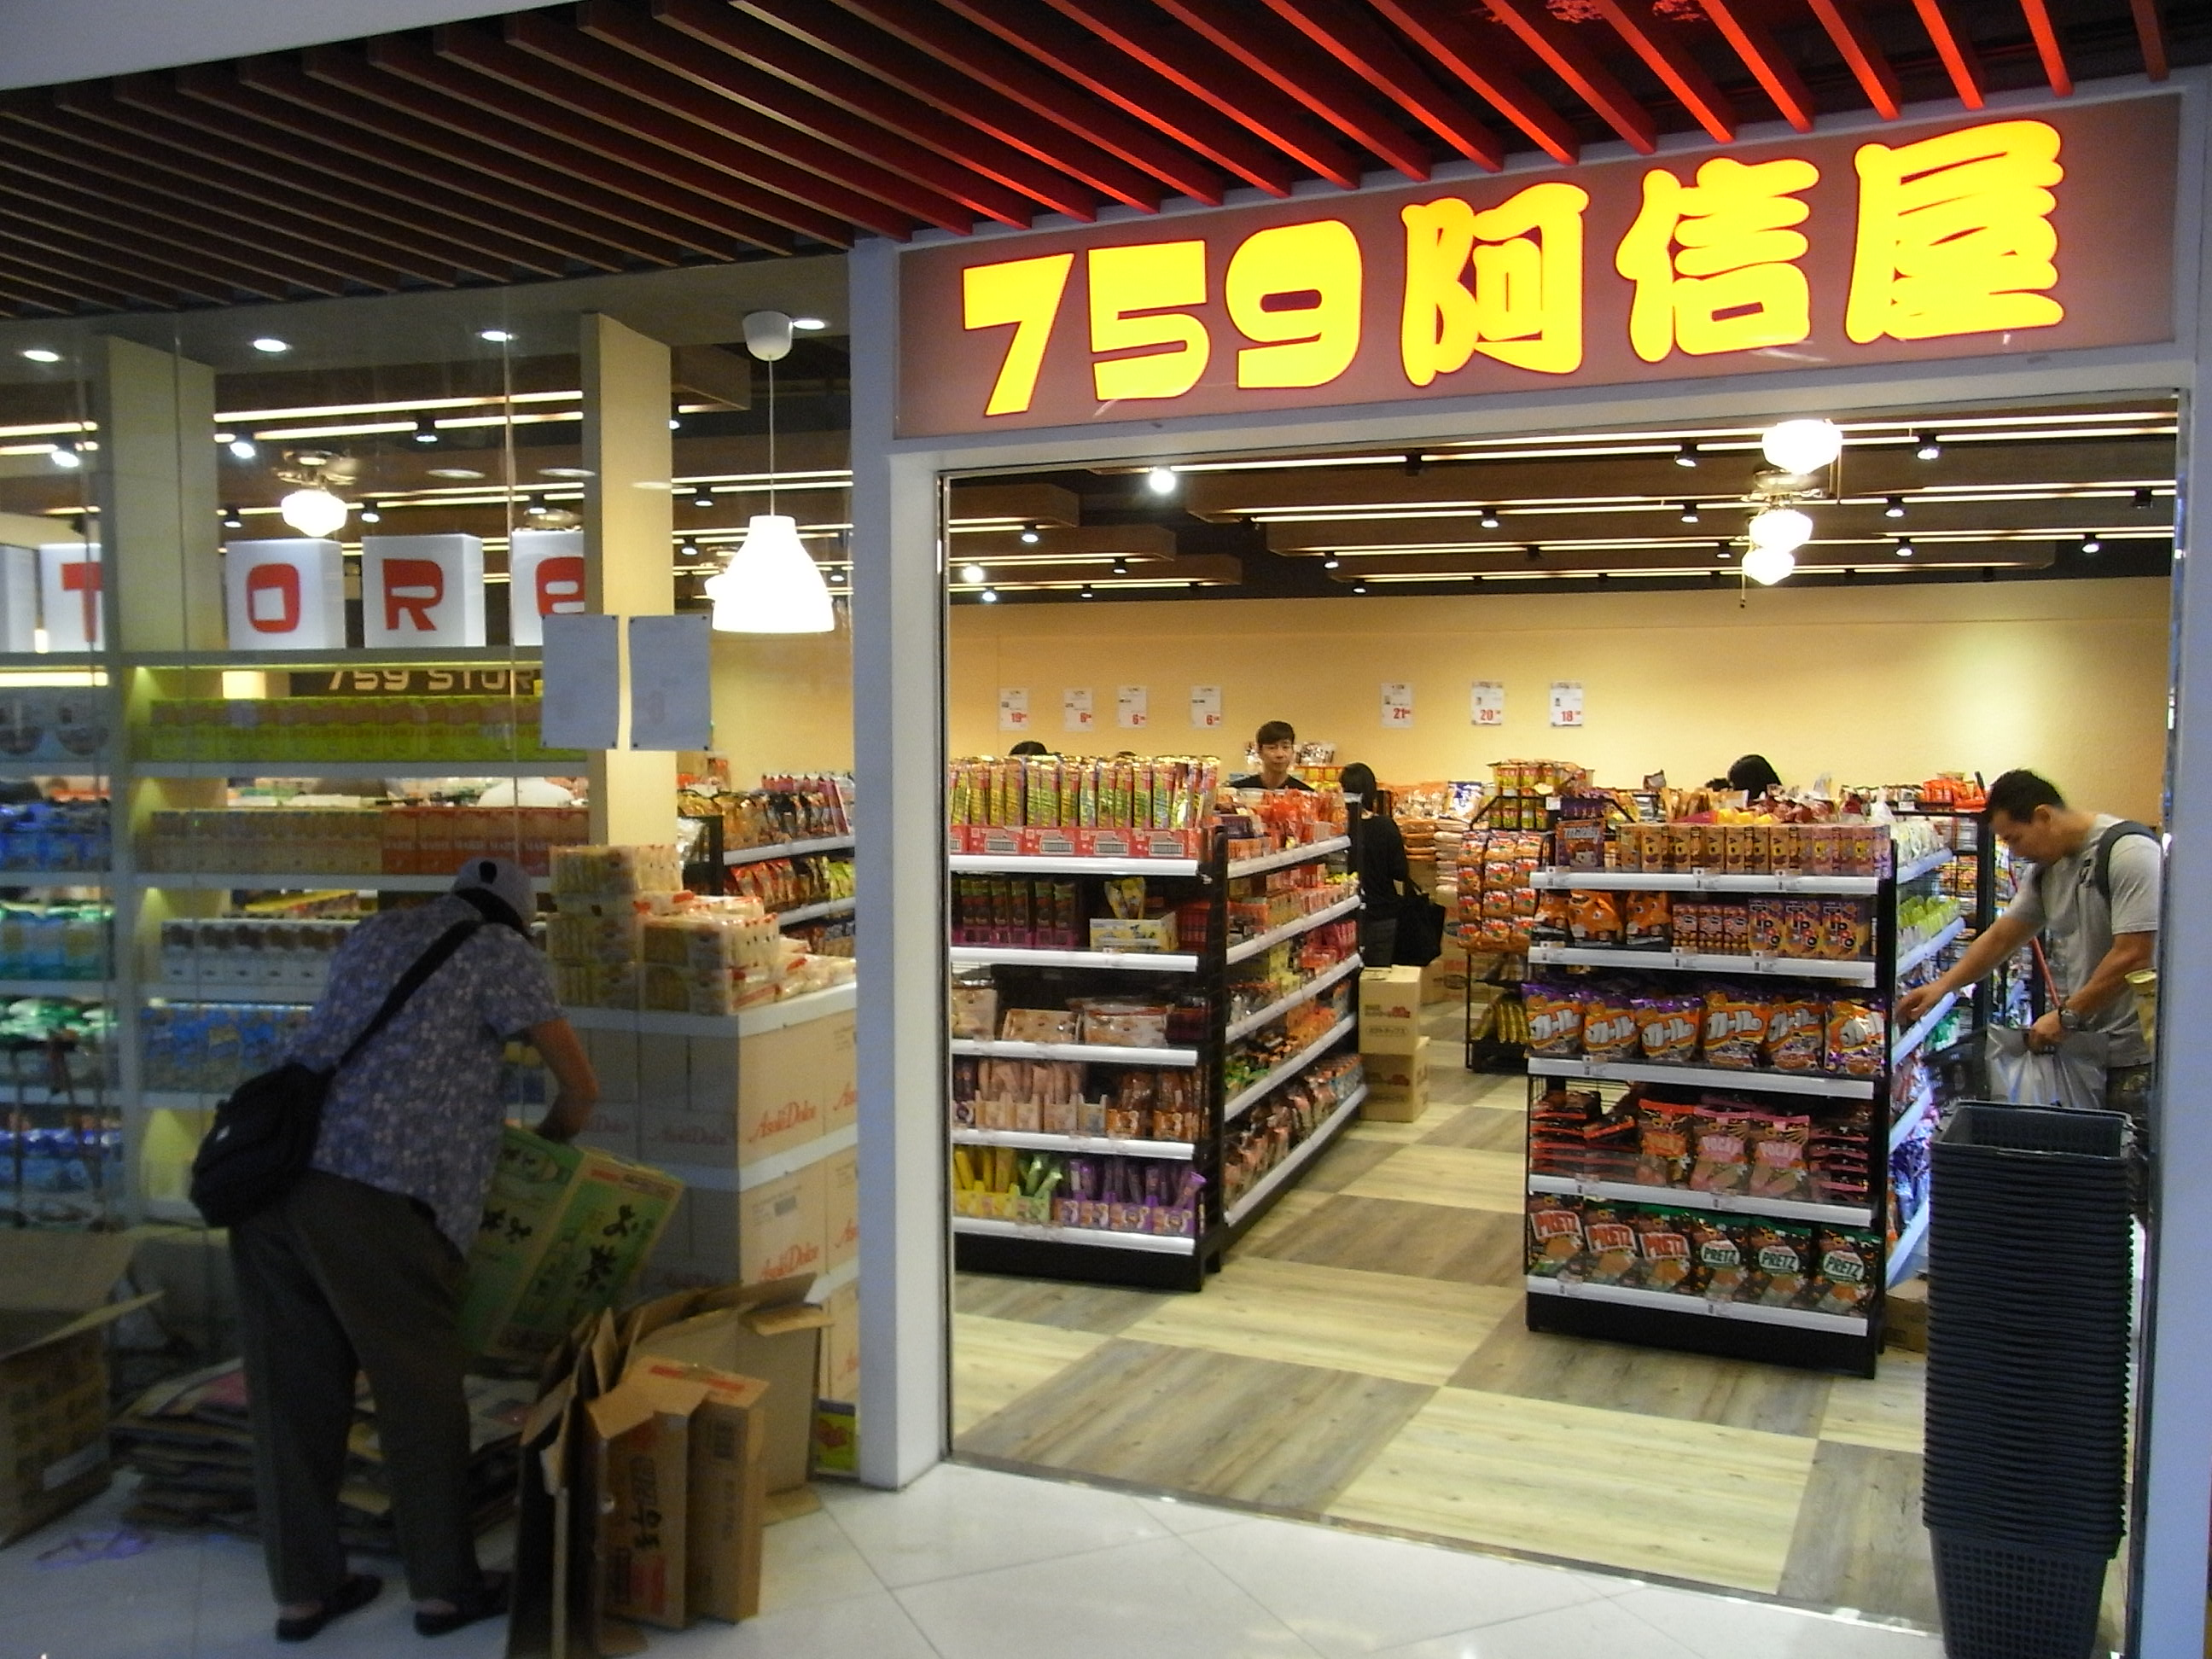 759 store Financial year worst ever for cec international holdings, which runs the 759 store chain.